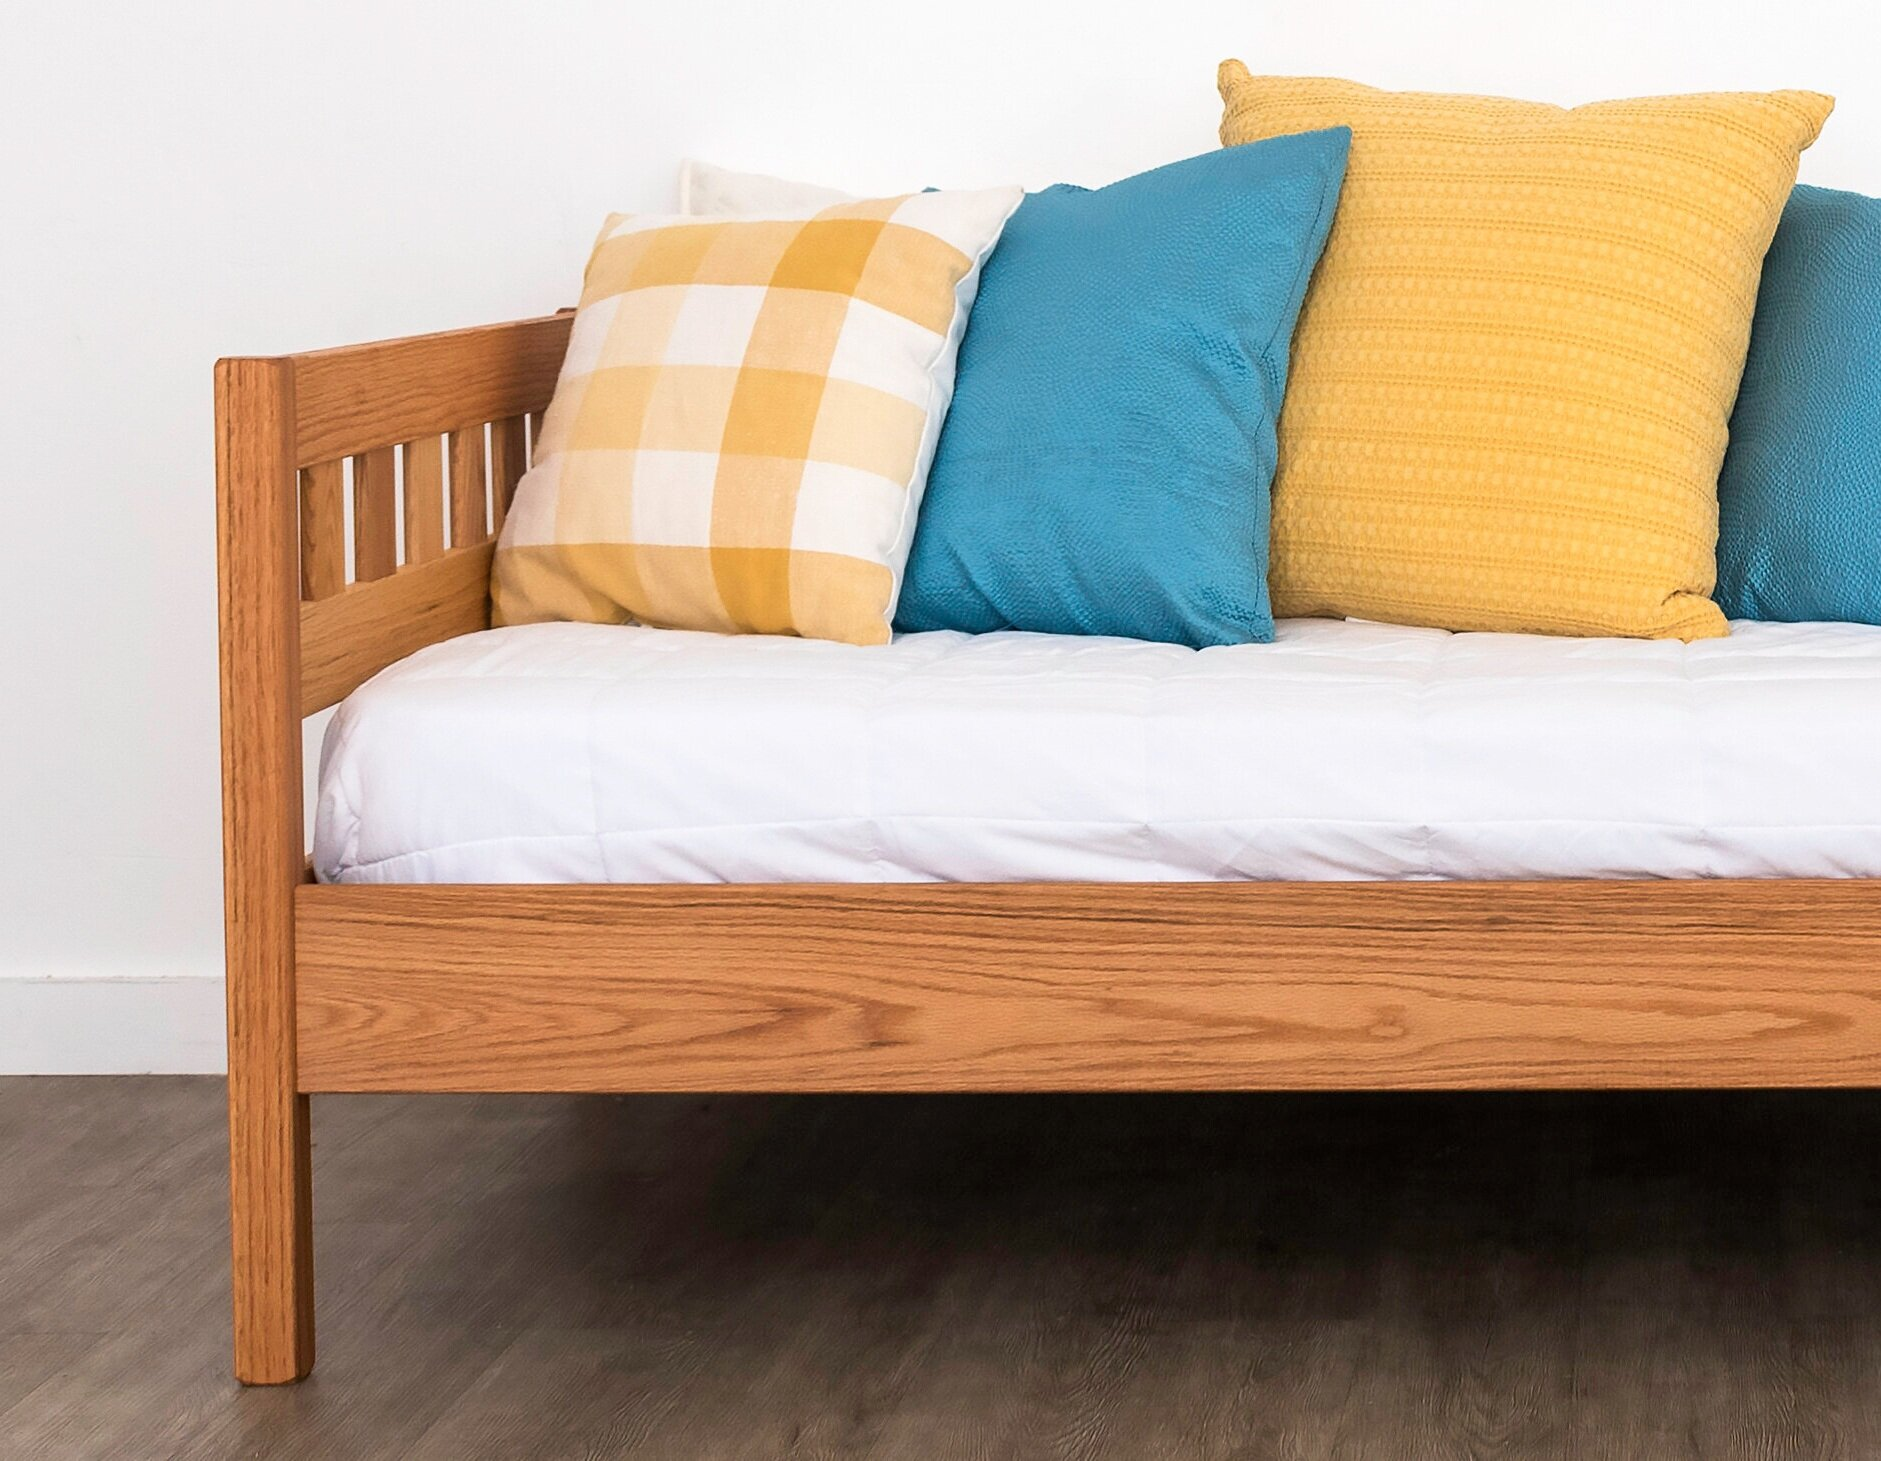 Cot Daybeds Beds Twin